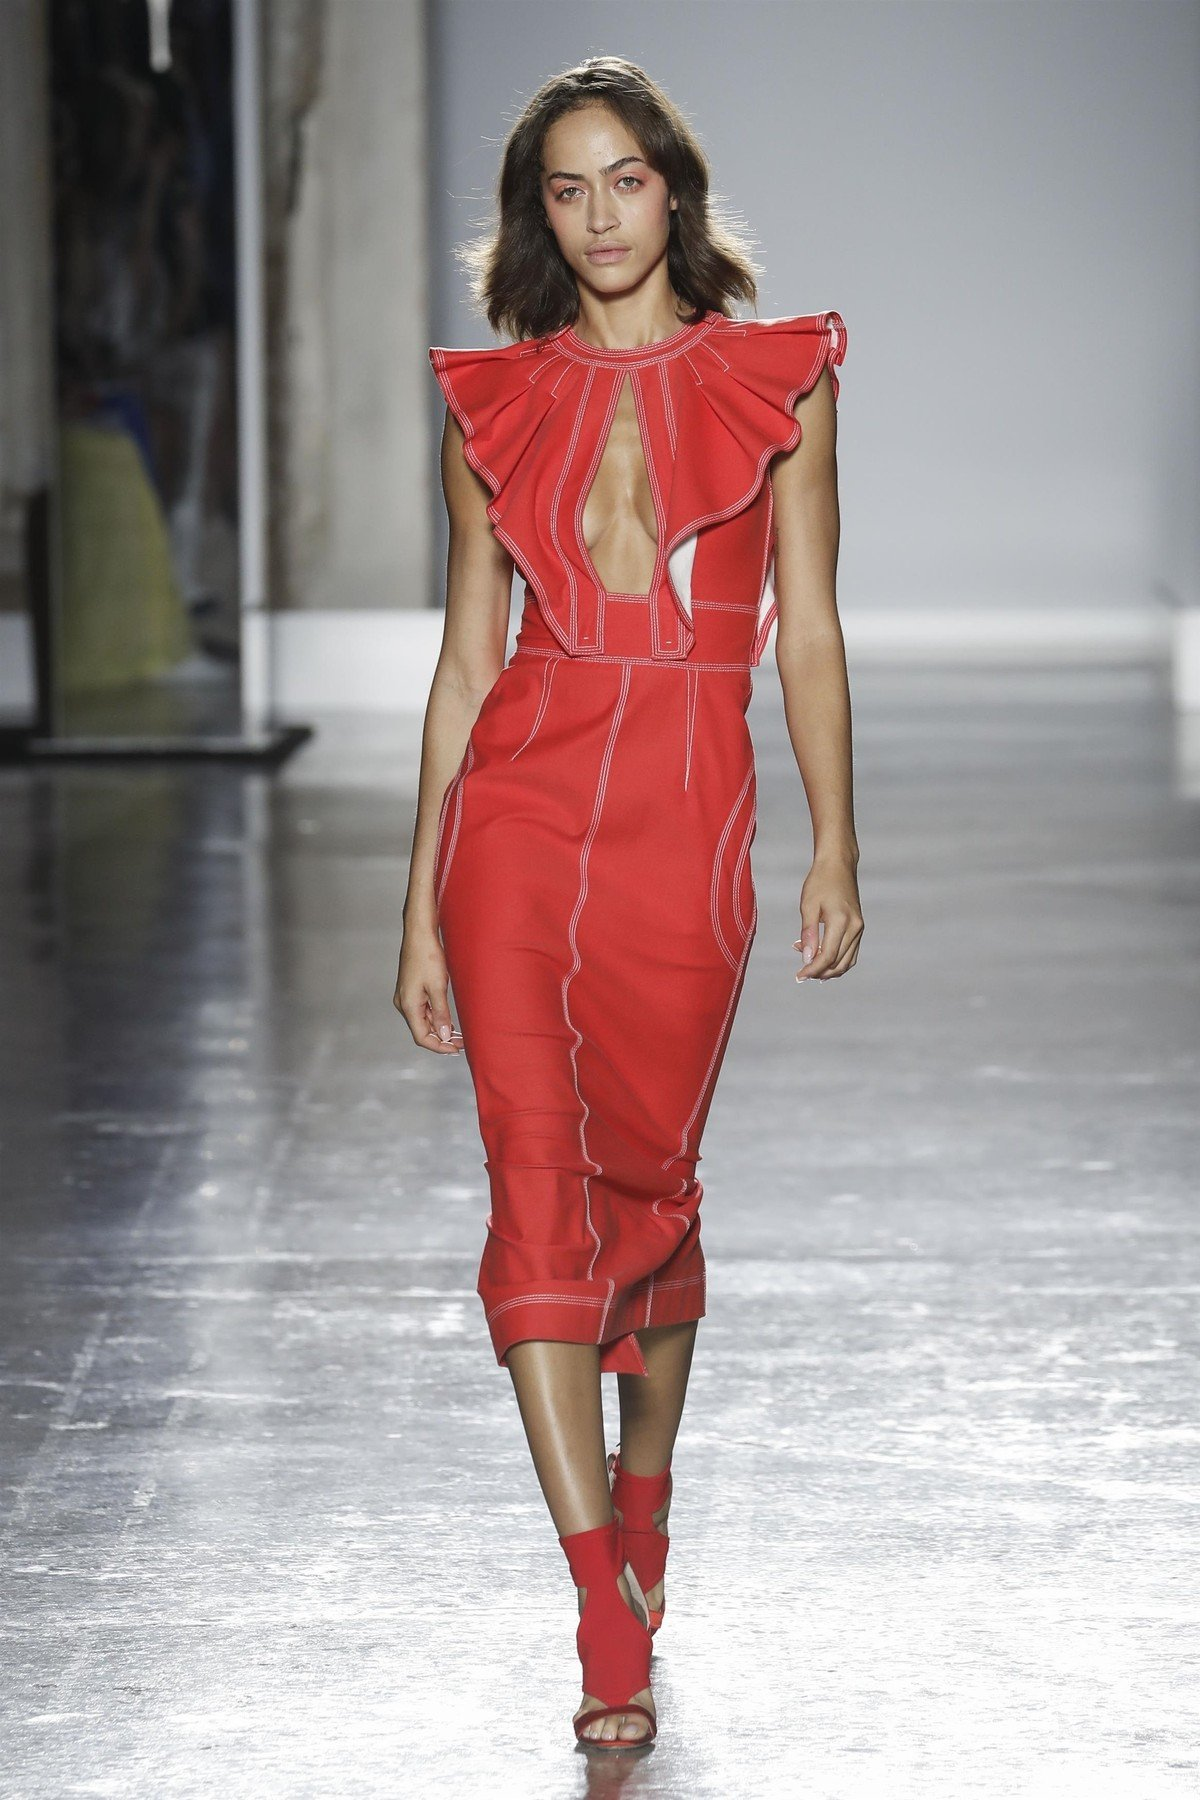 ** RIGHTS: WORLDWIDE EXCEPT IN AUSTRALIA, AUSTRIA, FRENCH POYNESIA, GERMANY, NEW ZEALAND ** Milan, ITALY  - Genny - Model On Catwalk during Milan Fashion Week 2019 Ready To Wear For Spring Summer.  Pictured: Genny    *UK Clients - Pictures Containing Children Please Pixelate Face Prior To Publication*, Image: 387631242, License: Rights-managed, Restrictions: , Model Release: no, Credit line: Profimedia, AKM-GSI